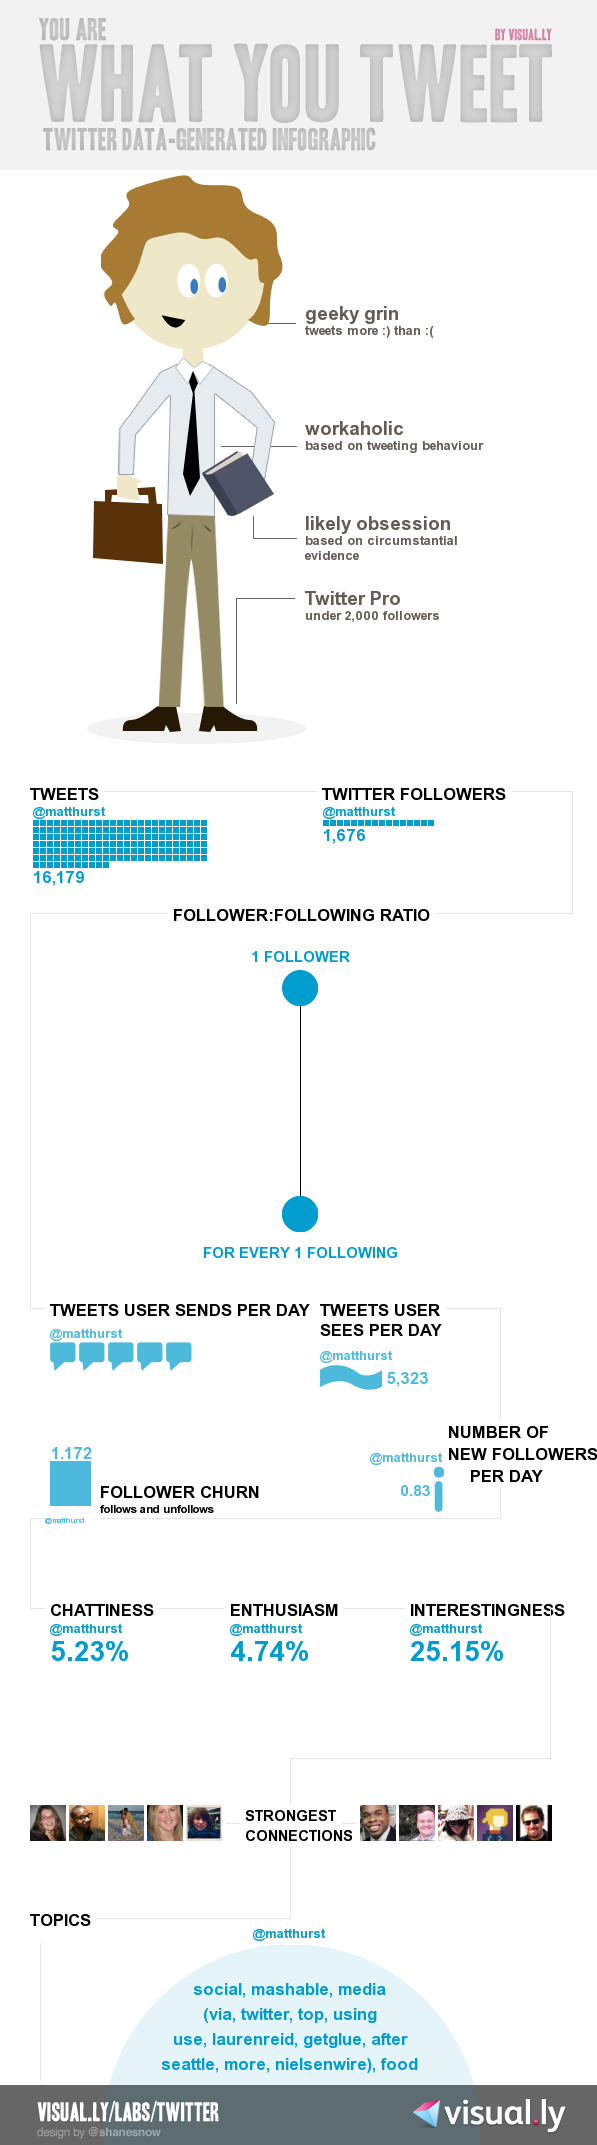 Infographic of Matthew Hurst's Twitter usage